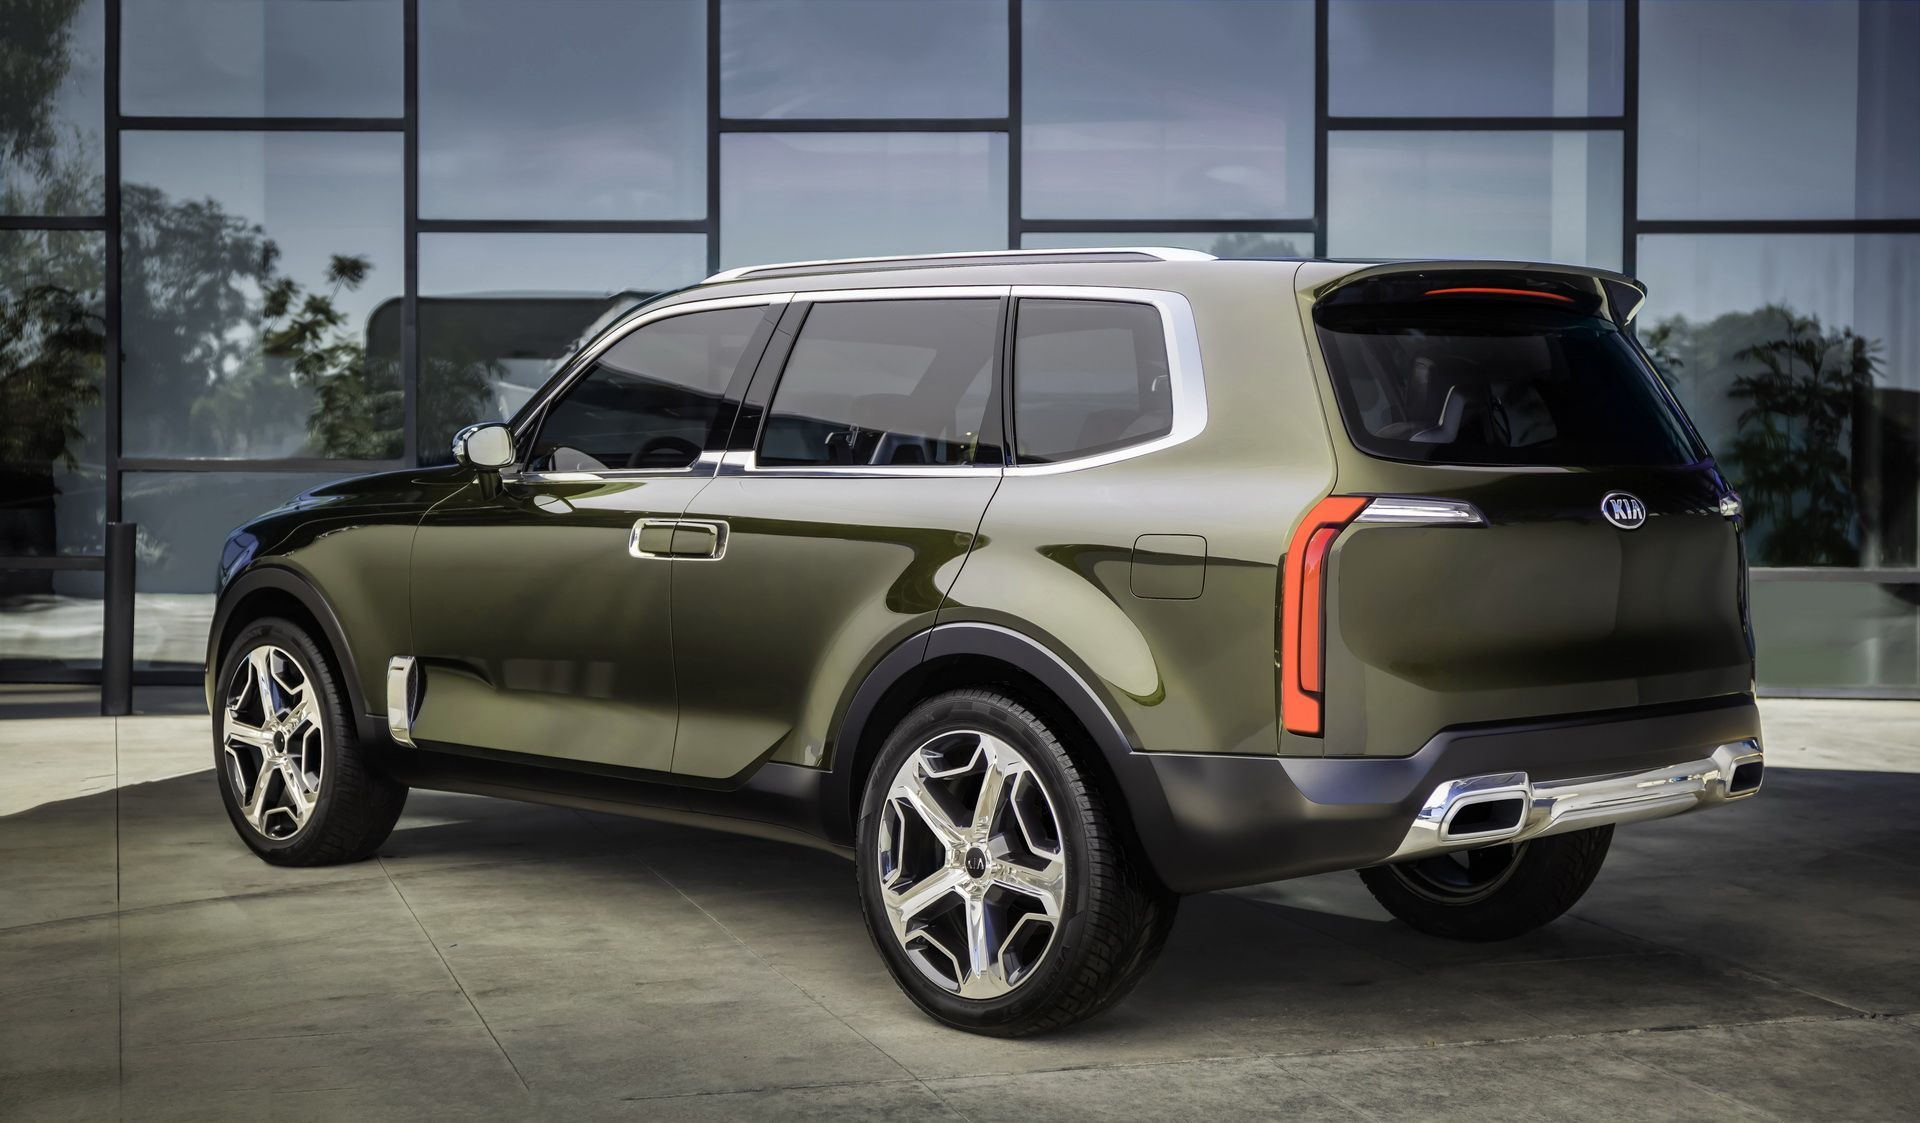 kia-telluride-production-6.jpg